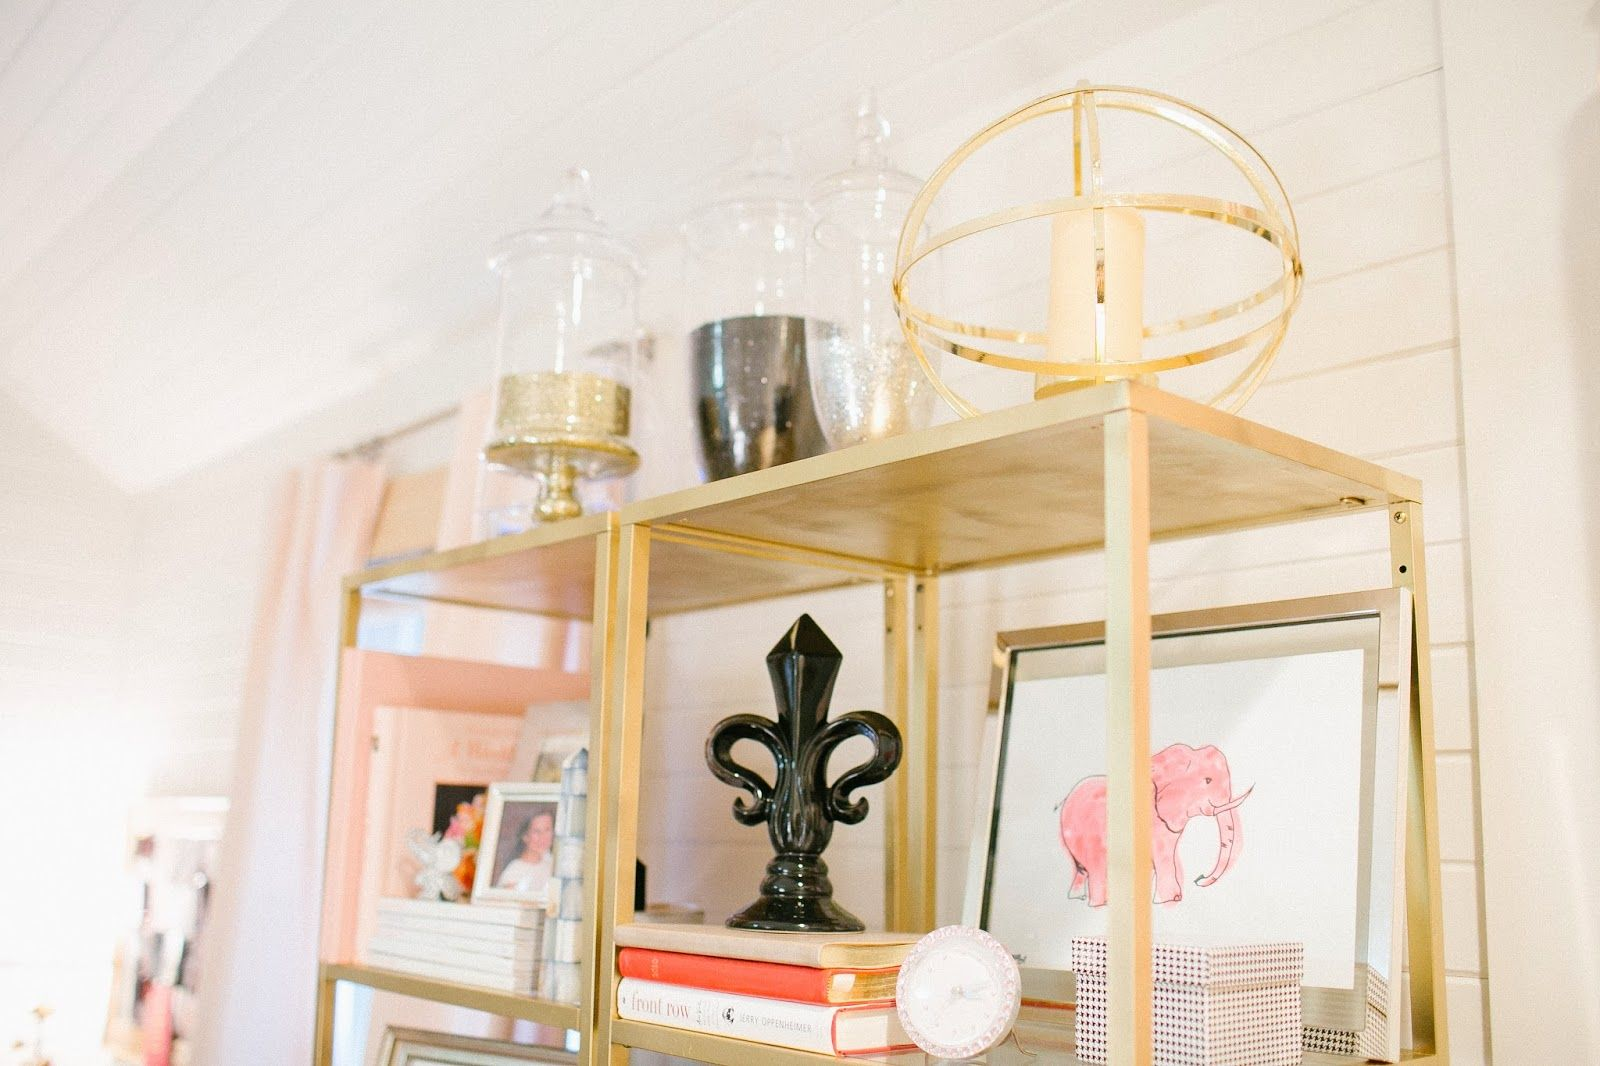 @Cat Cantrell || Perpetual Perfection featured our Atlas Pillar Holders in her gold-embellished nook.